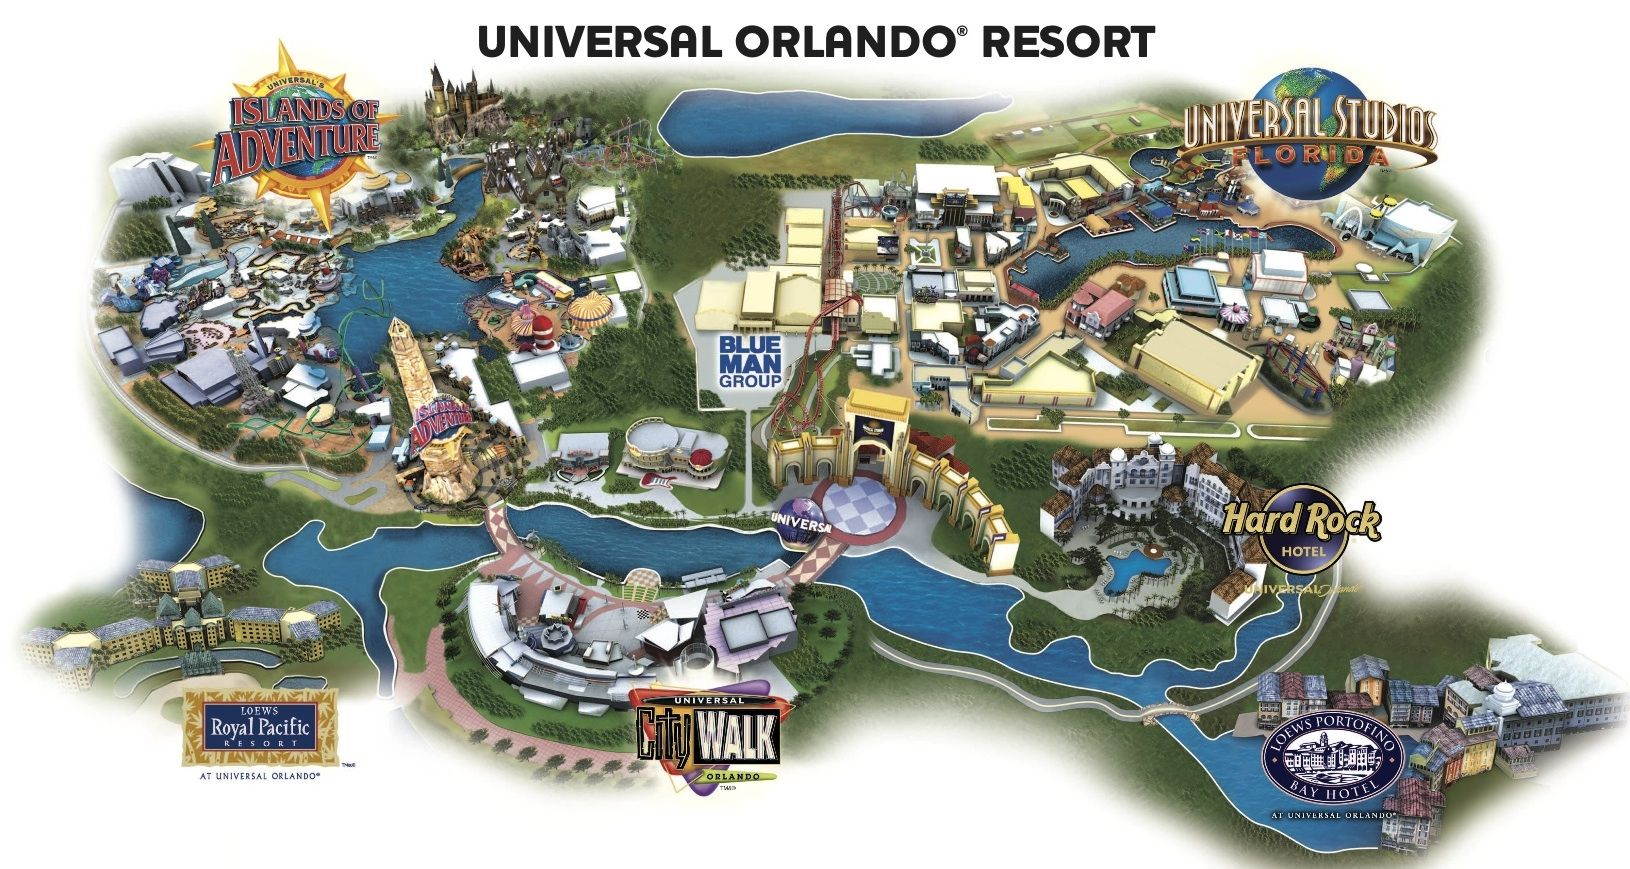 Universal Resort Map Staying At Hard Rock Hotel Means You